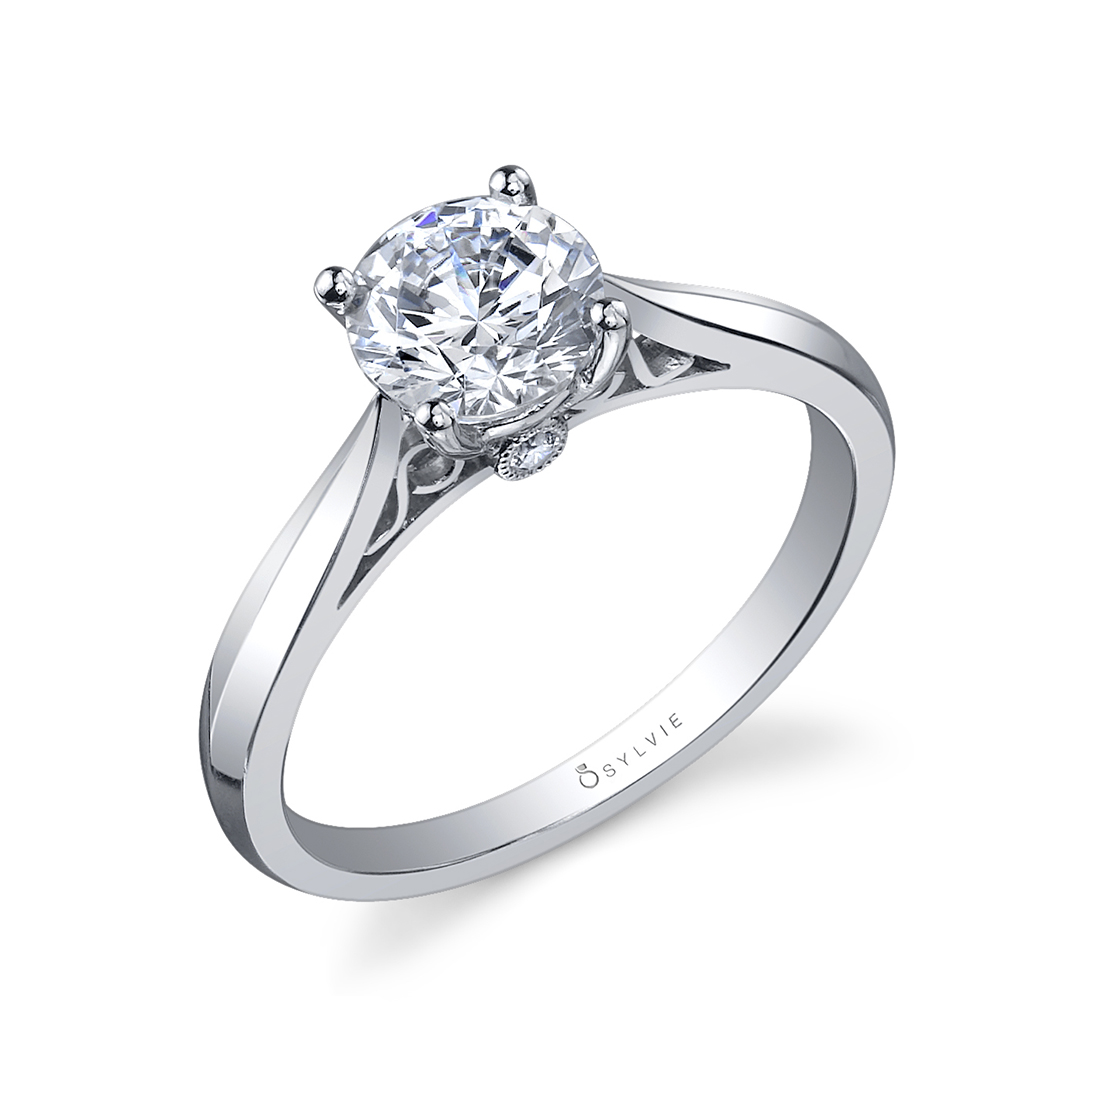 Round High Polish Solitaire Engagement Ring SY904